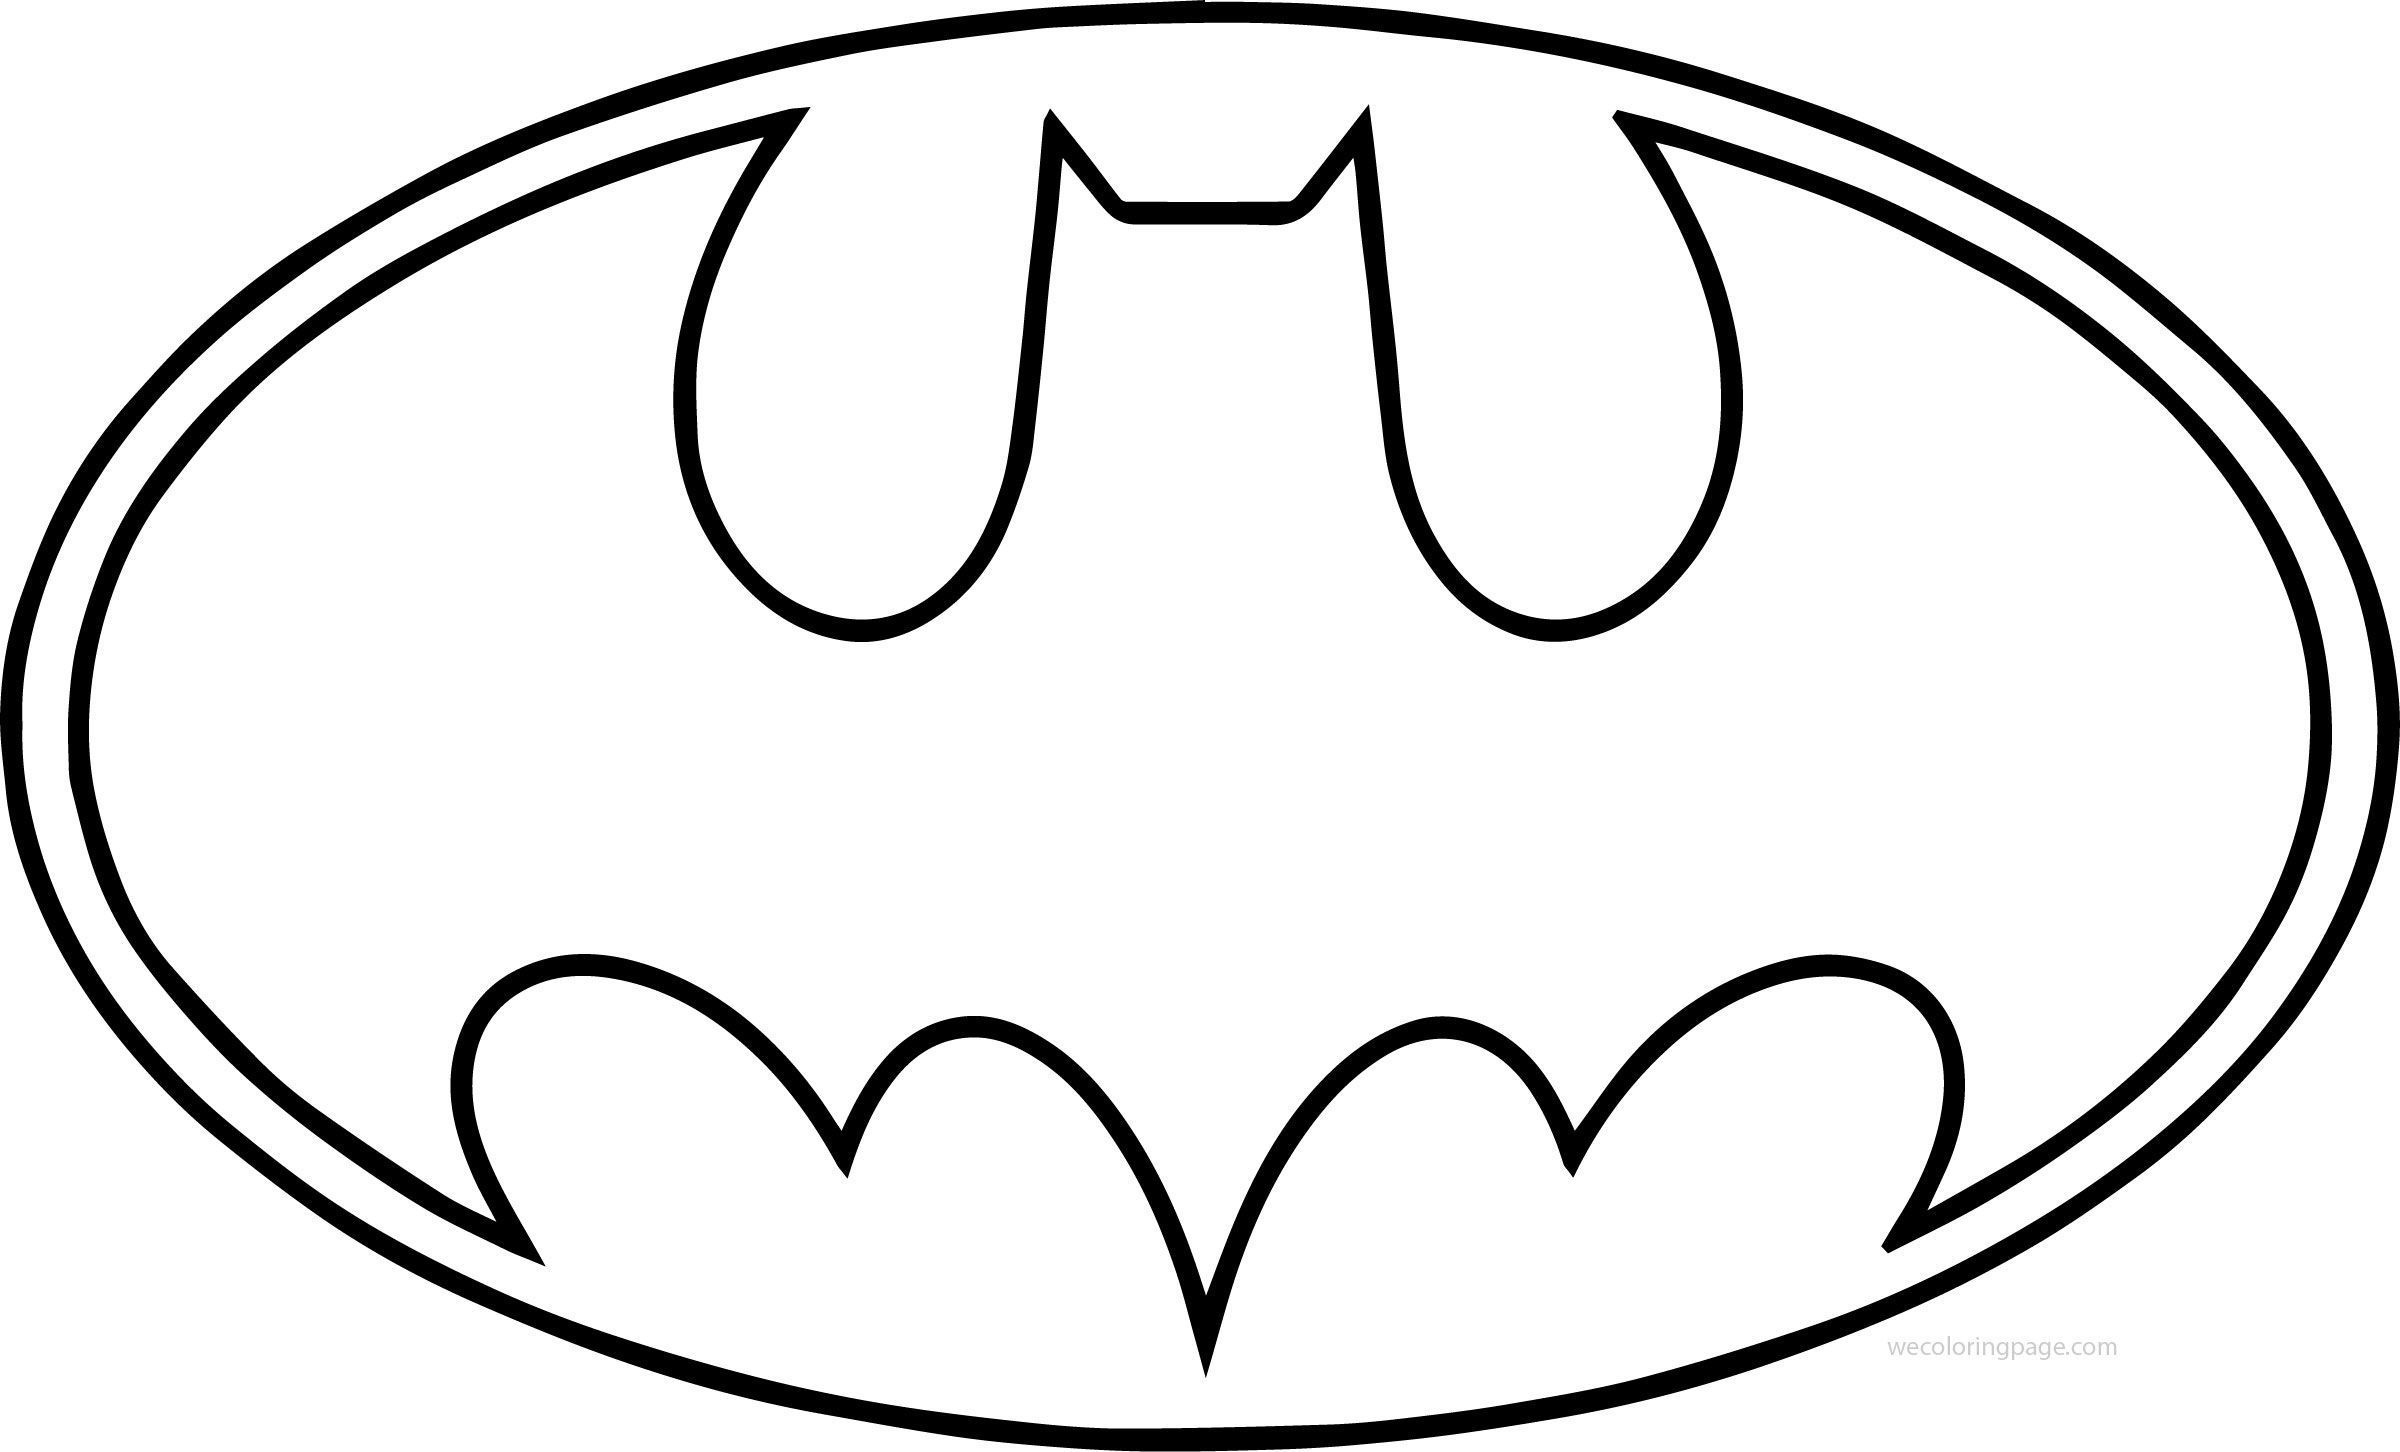 Batman Logo Coloring Pages And Superhero Templates Dc Lego Coloring Pages Batman Coloring Pages Coloring Book Art